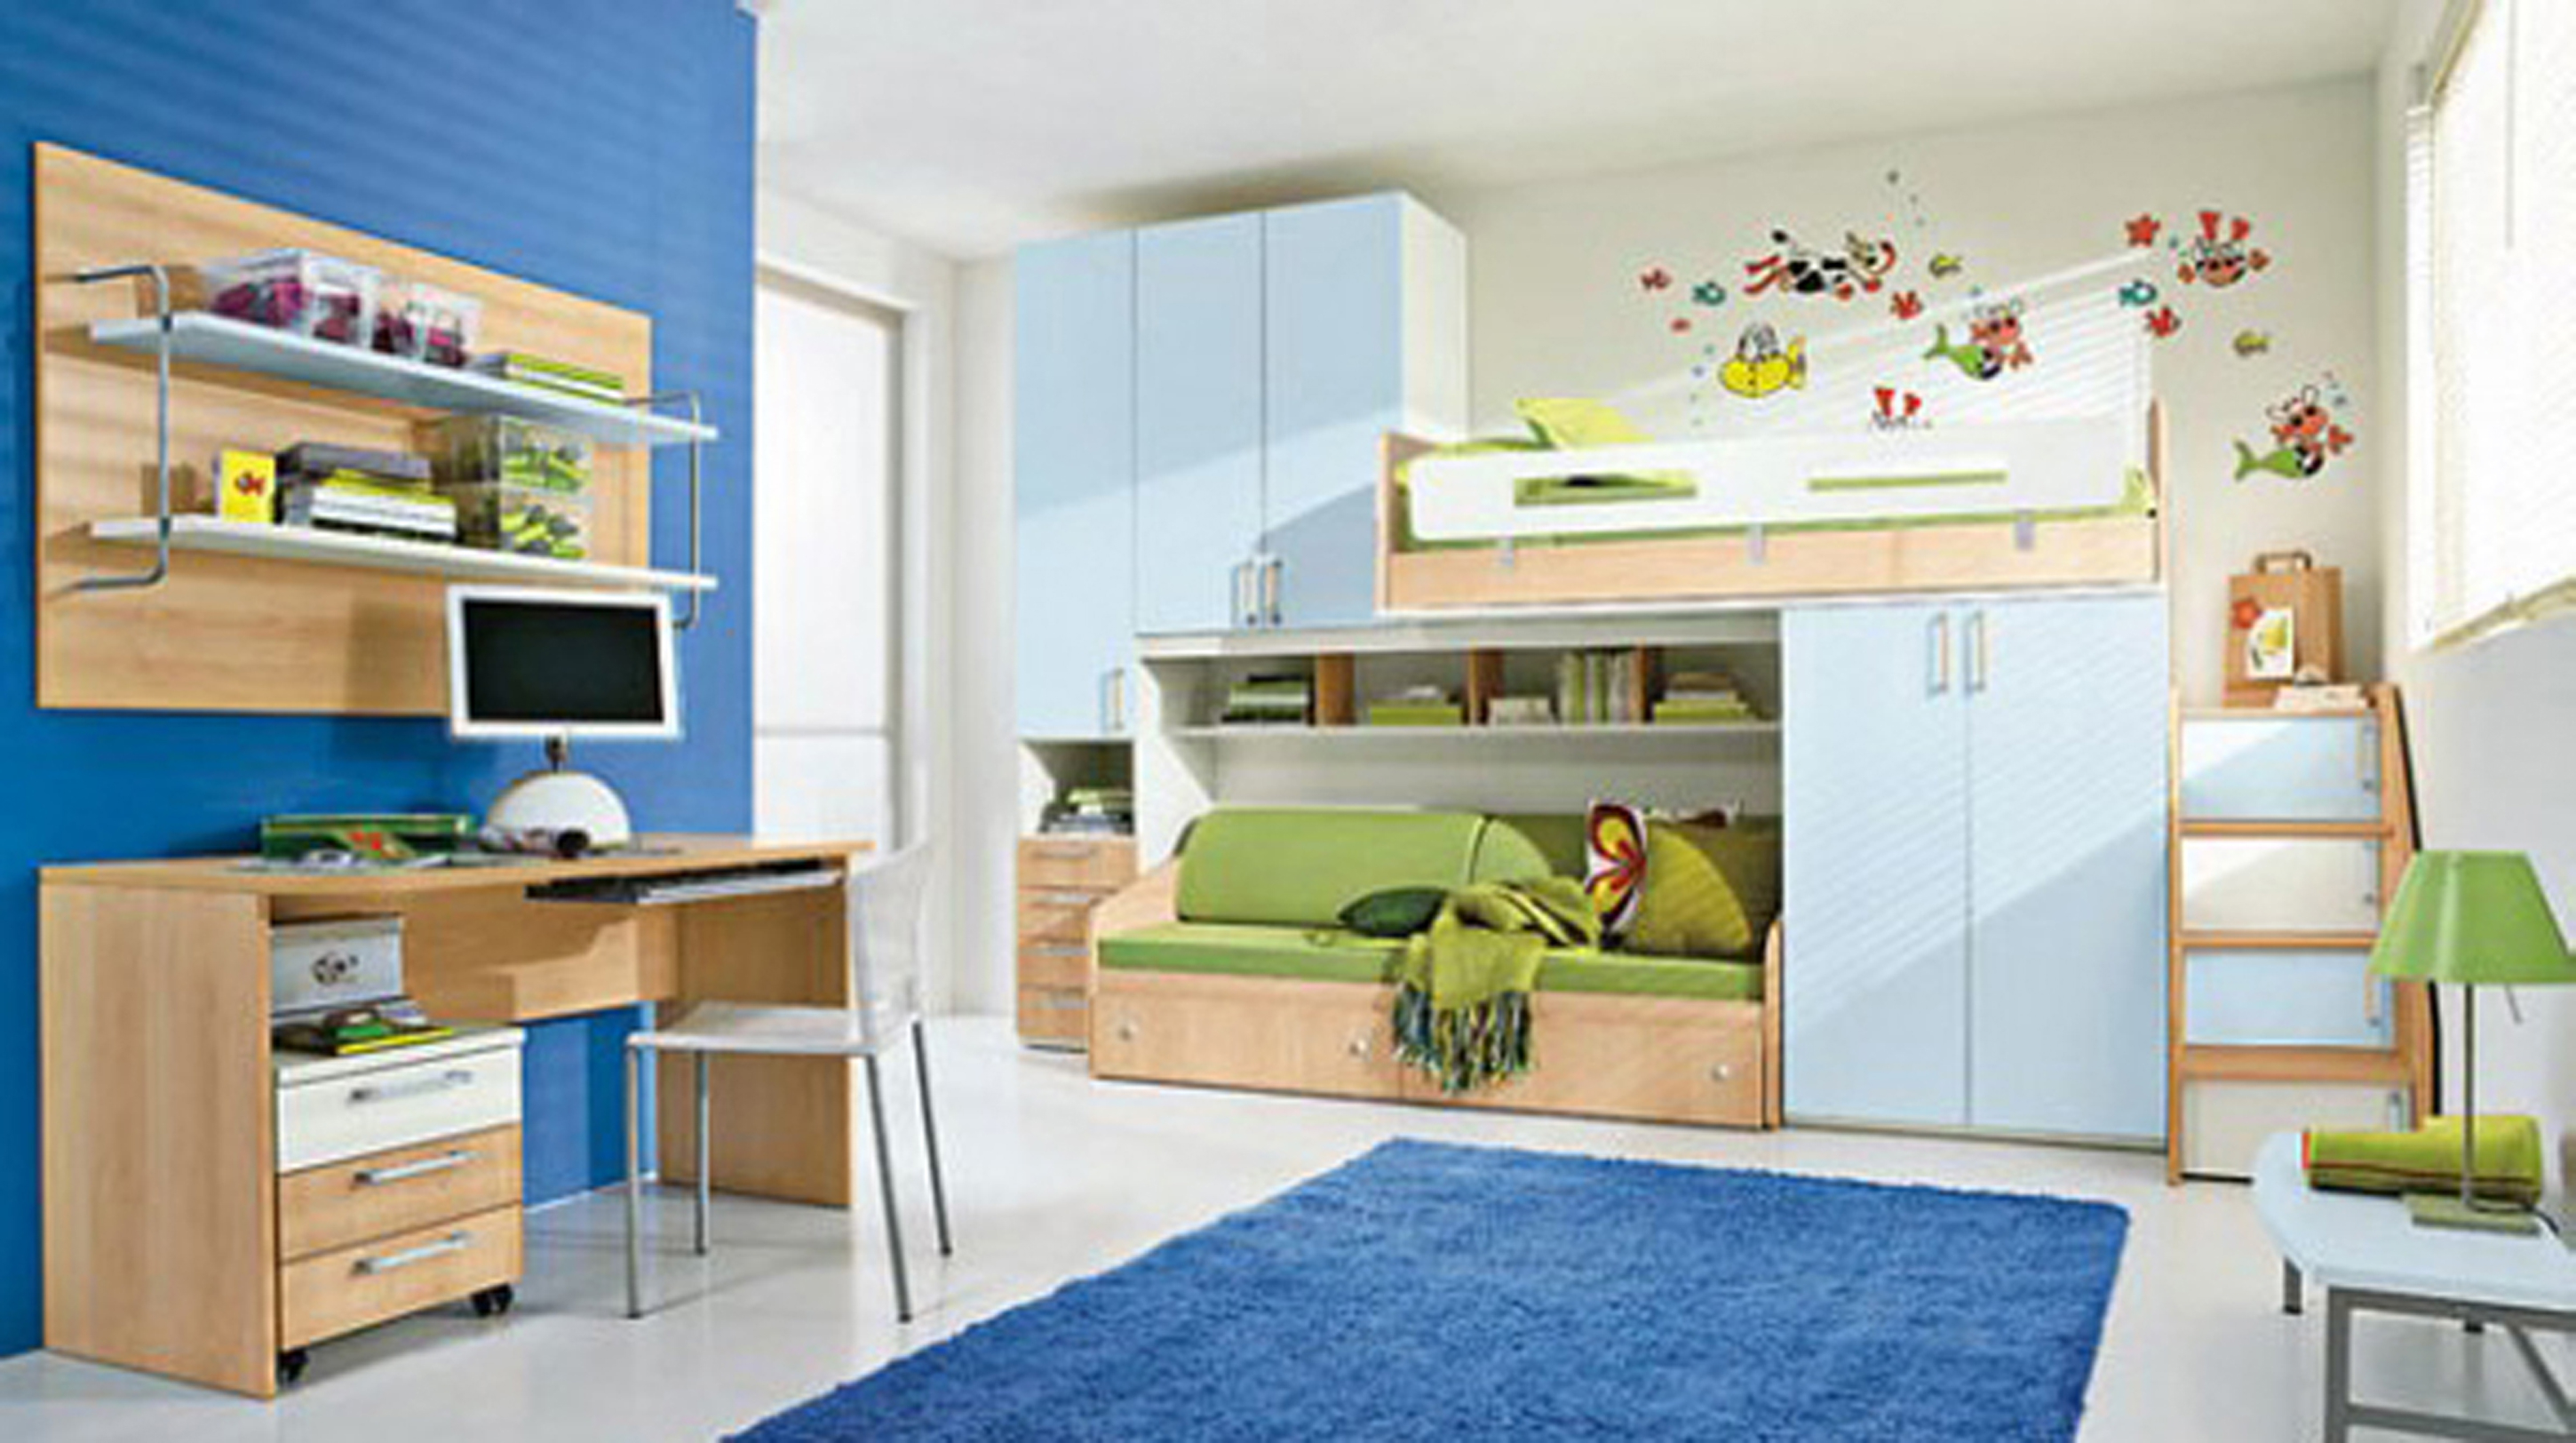 Cool kids room decorating ideas custom home design - Kids room image ...